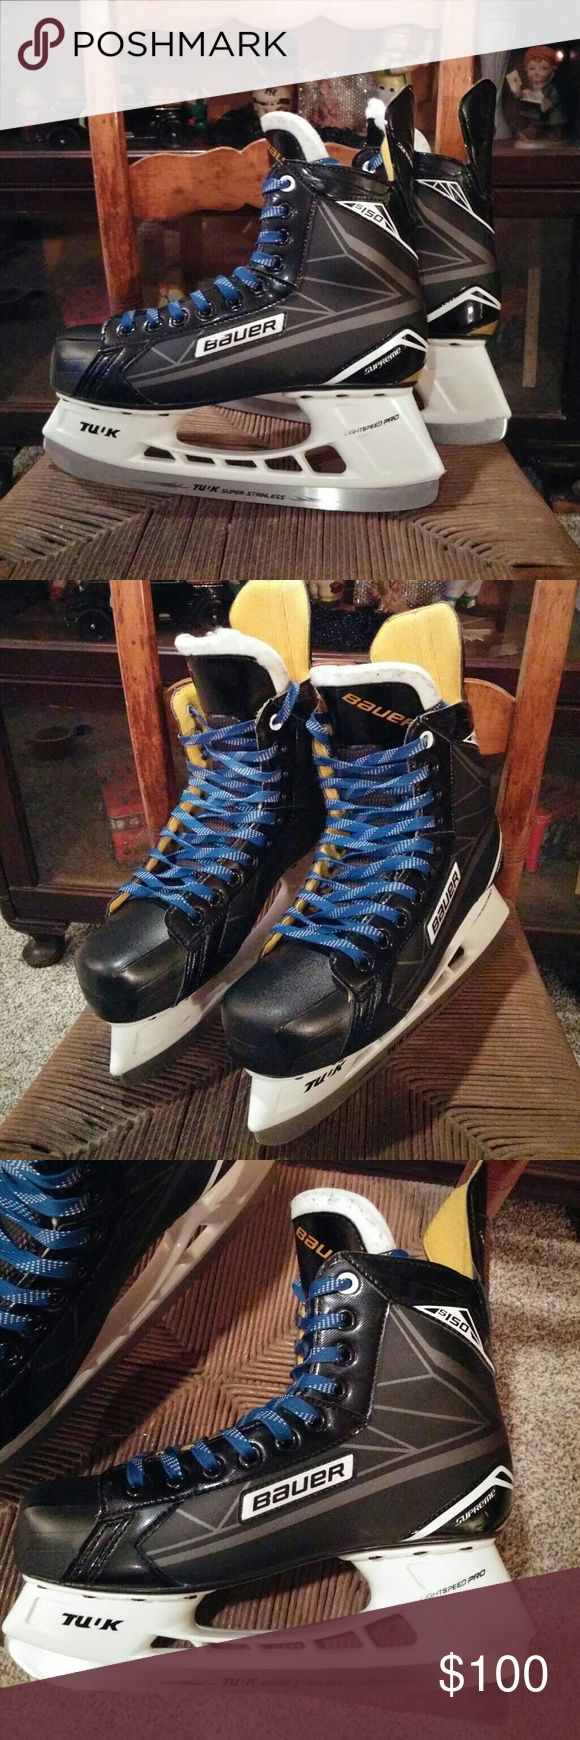 Bauer S150 Supreme Hockey Skates Skate size is an 8D..which equals a 9.5 mens shoe size..or equal to a 10.5 in woman's shoes. They have only been skated on 2 times. Original price $150.00. Sharpened and ready to skate. New waxed laces. Shoes Athletic Shoes